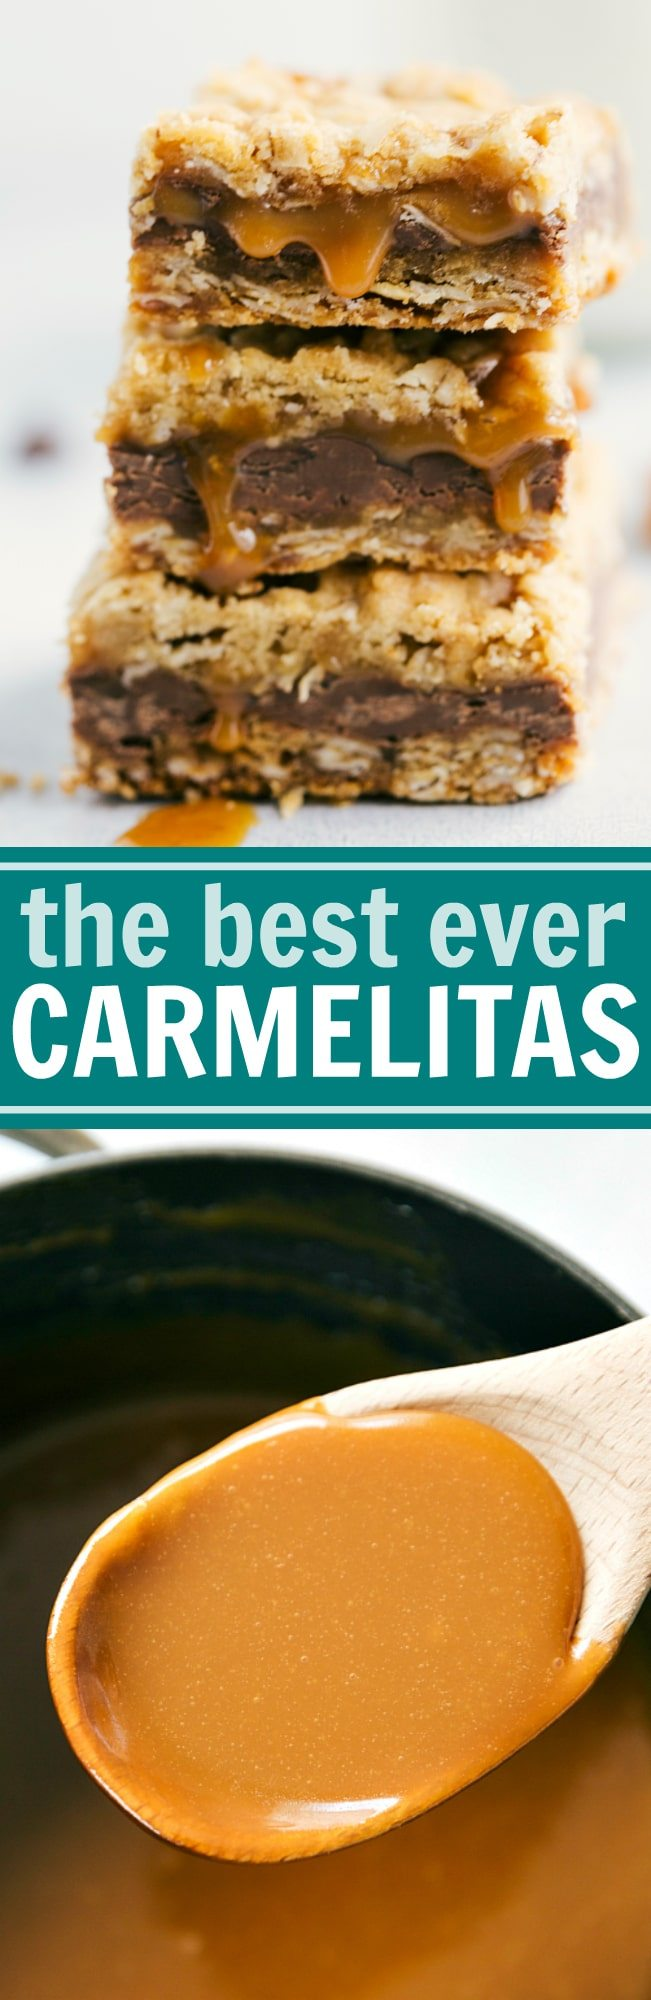 The BEST EVER Carmelitas -- oatmeal bars with a thick layer of milk chocolate and creamy caramel. These bars can be prepared in 20 minutes or less!! via chelseasmessyapron.com #carmelita #carmelitas #dessert #baking #holiday #bar #easy #quick